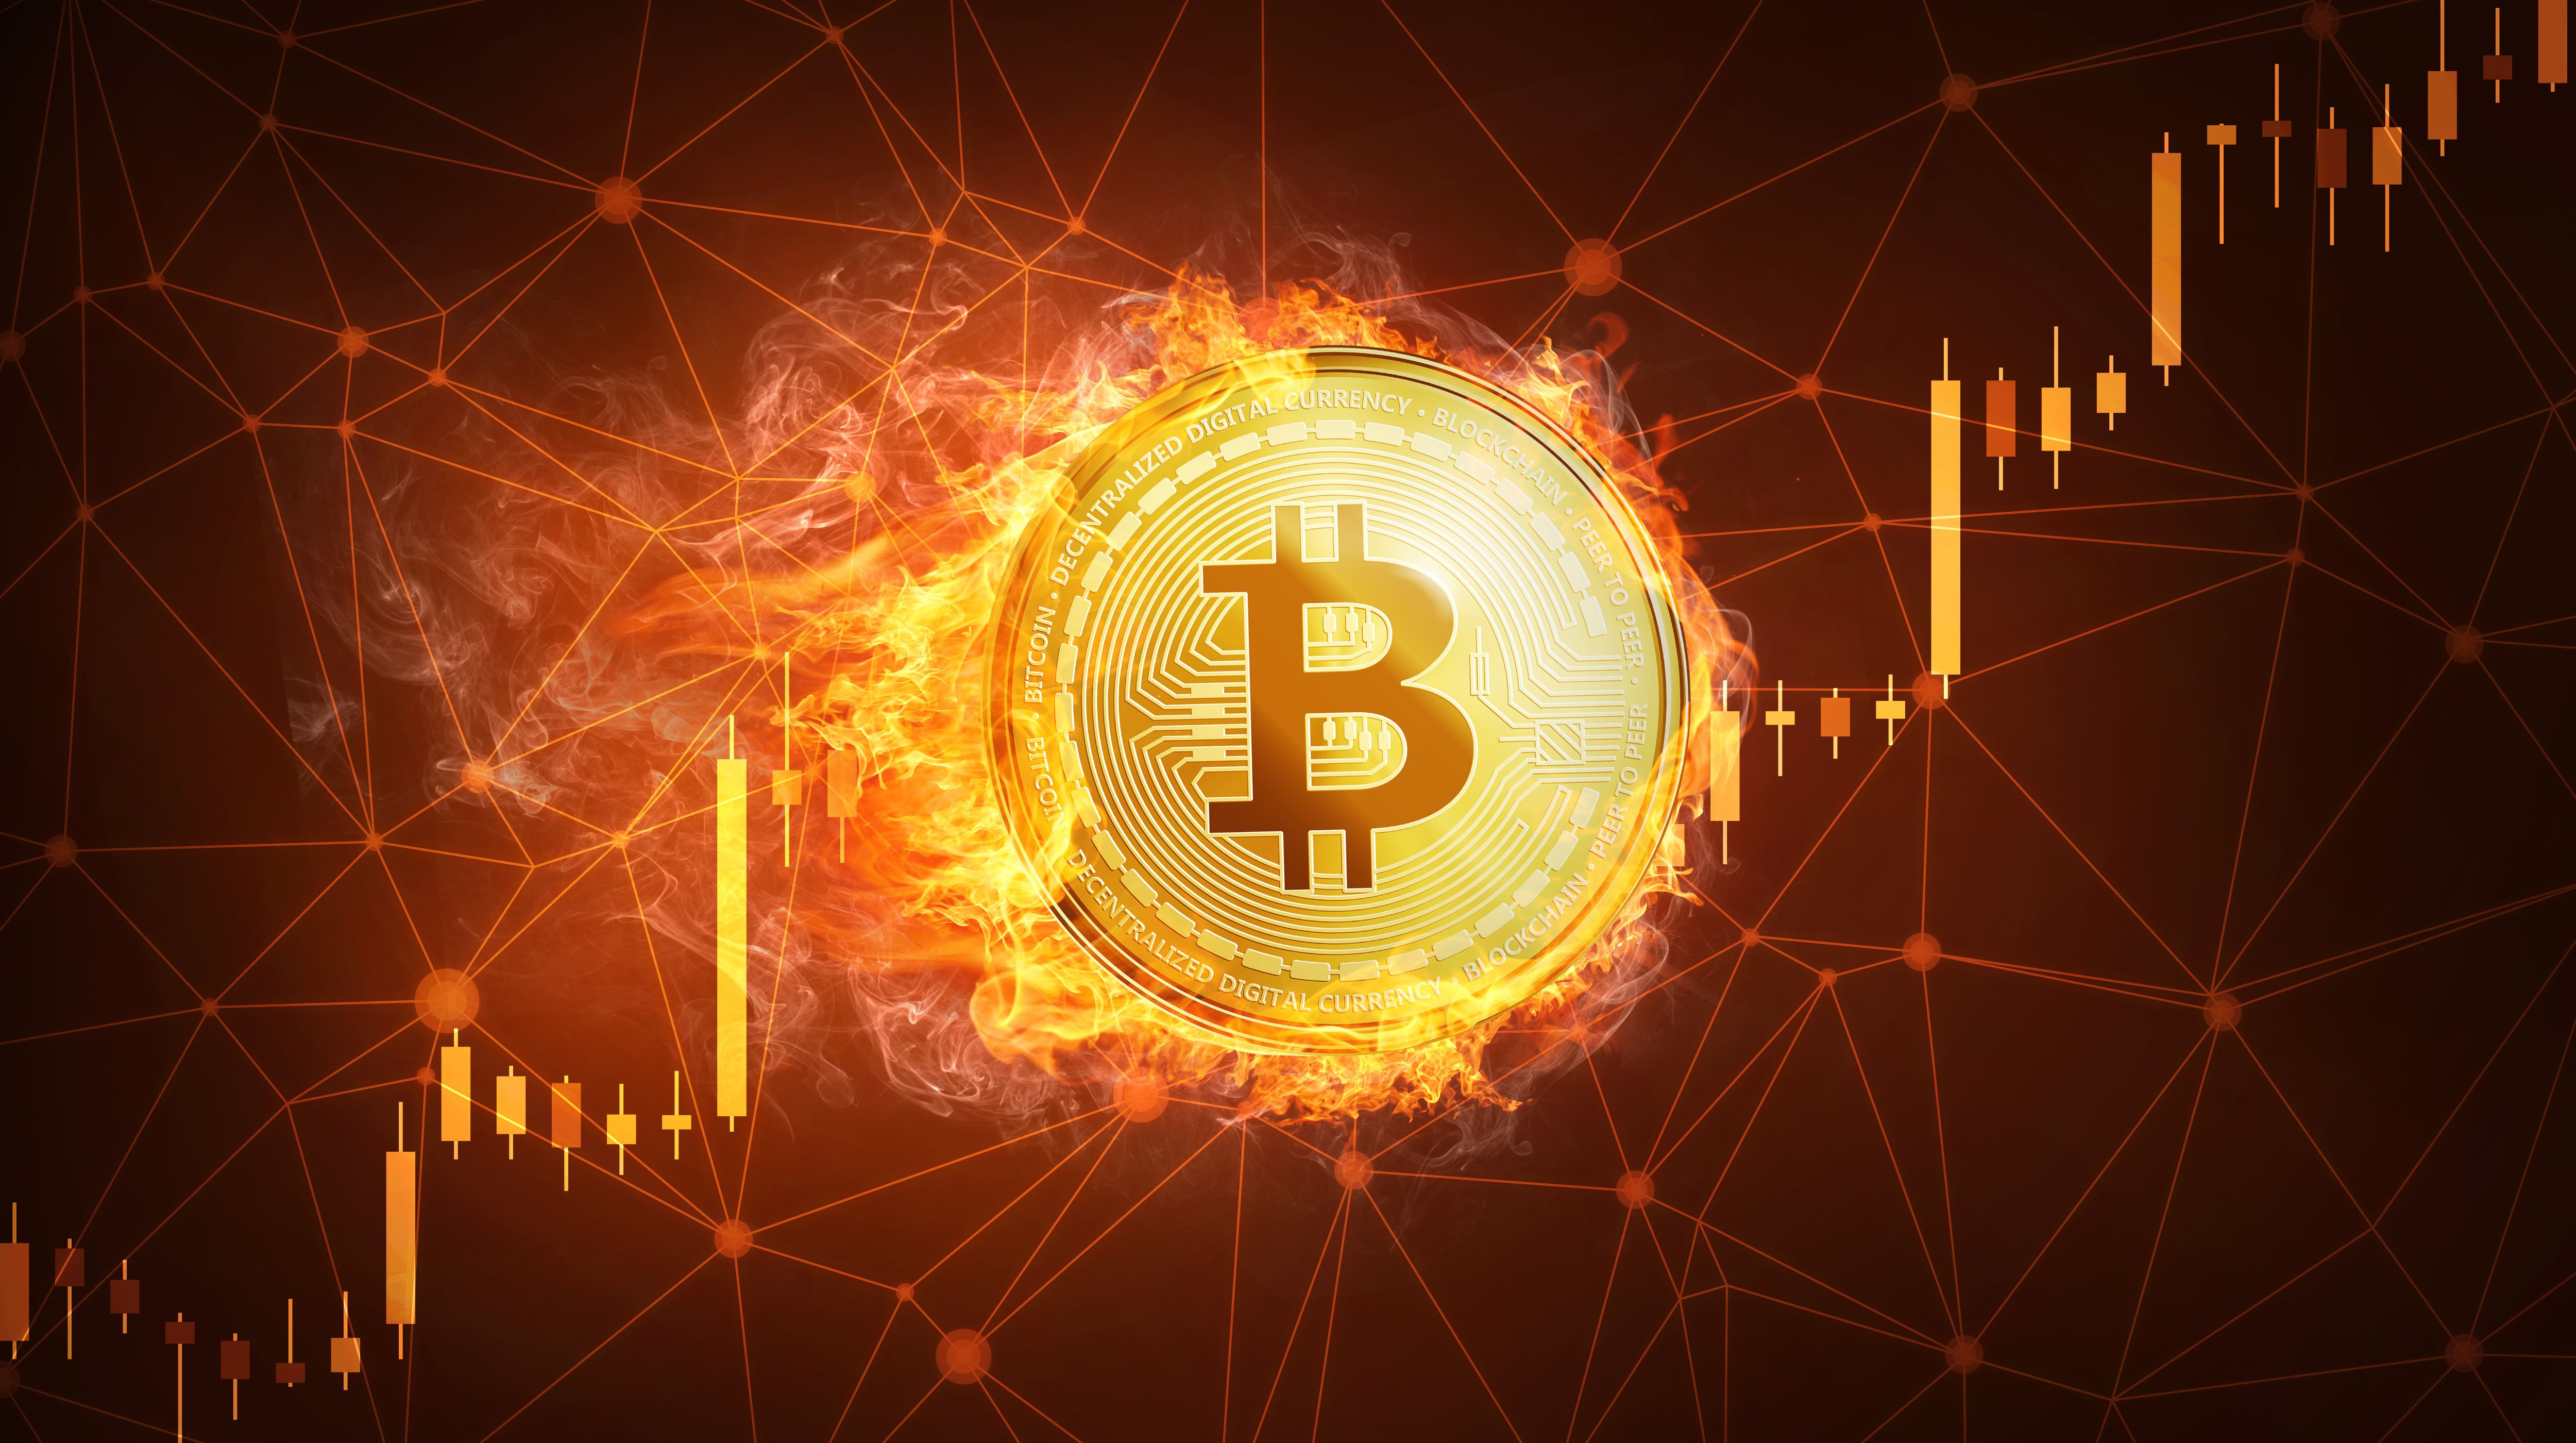 /bitcoin-has-been-in-a-bull-market-for-2-years-5v1y31cj feature image